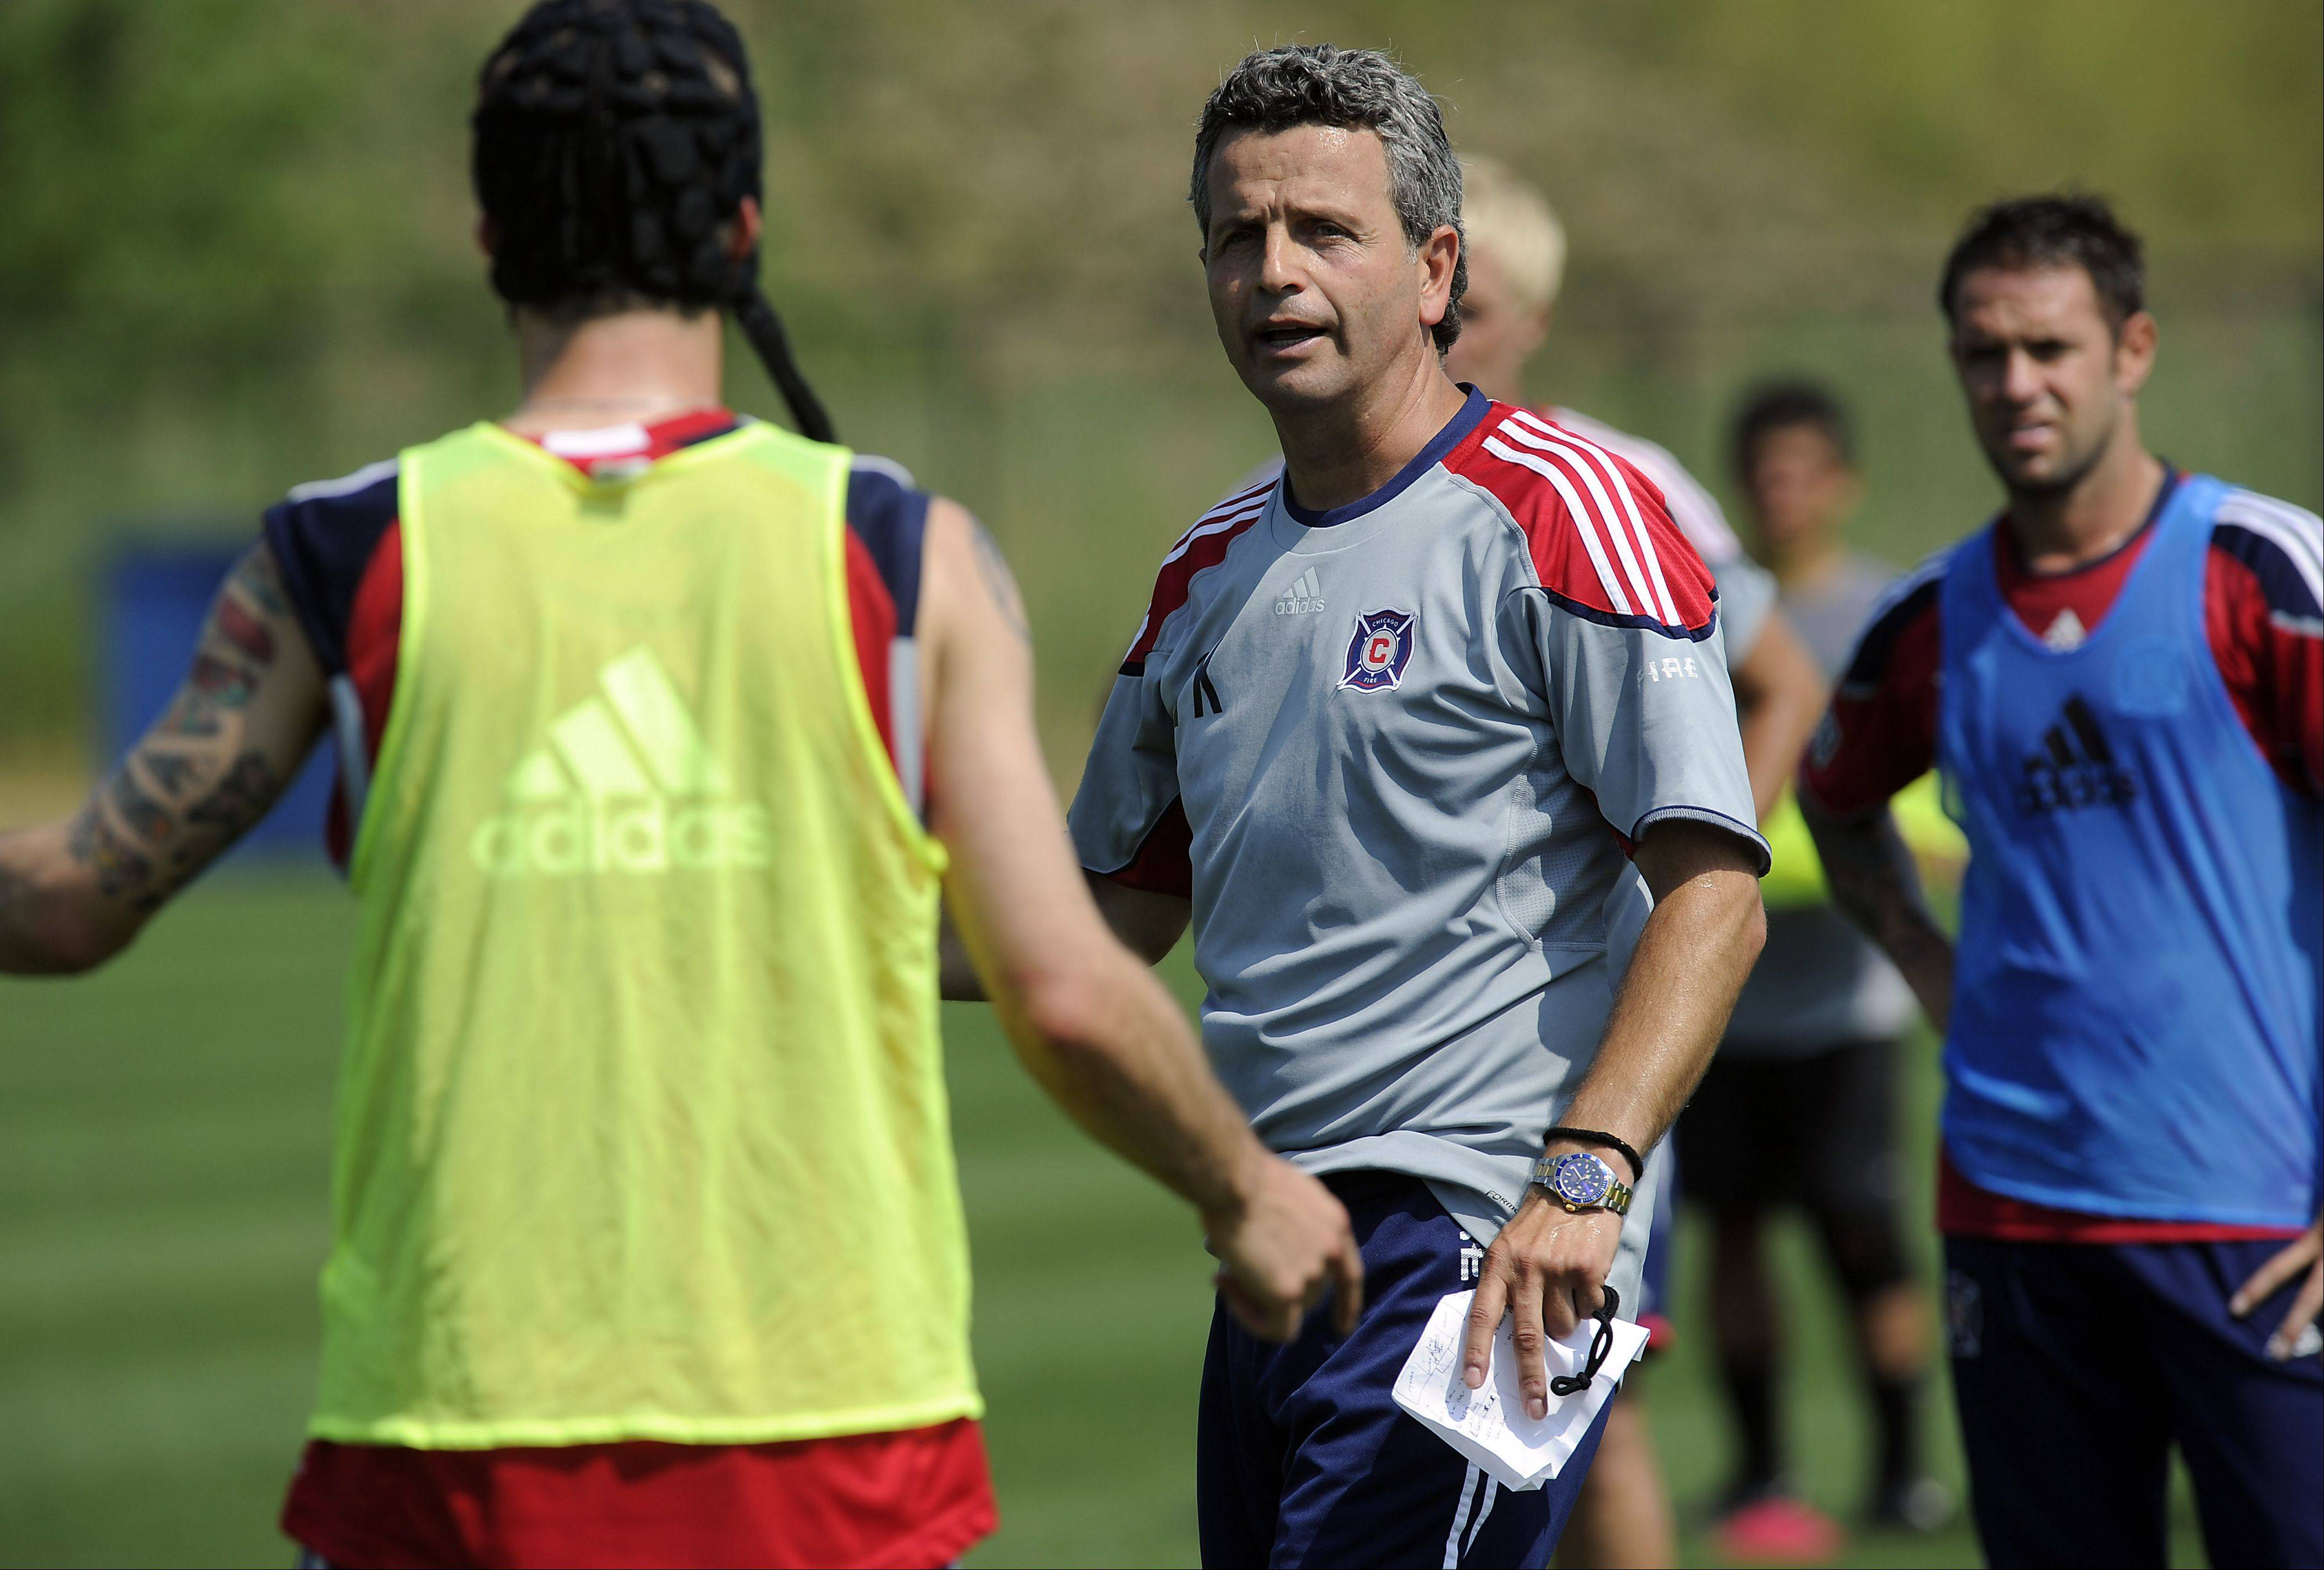 The Chicago Fire soccer team warms up at the Toyota Park practice field in Bridgeview Tuesday getting ready for their big matchup with Manchester United at Soldier Field in Chicago on Saturday. Coach Frank Klopas barks out orders during that practice.